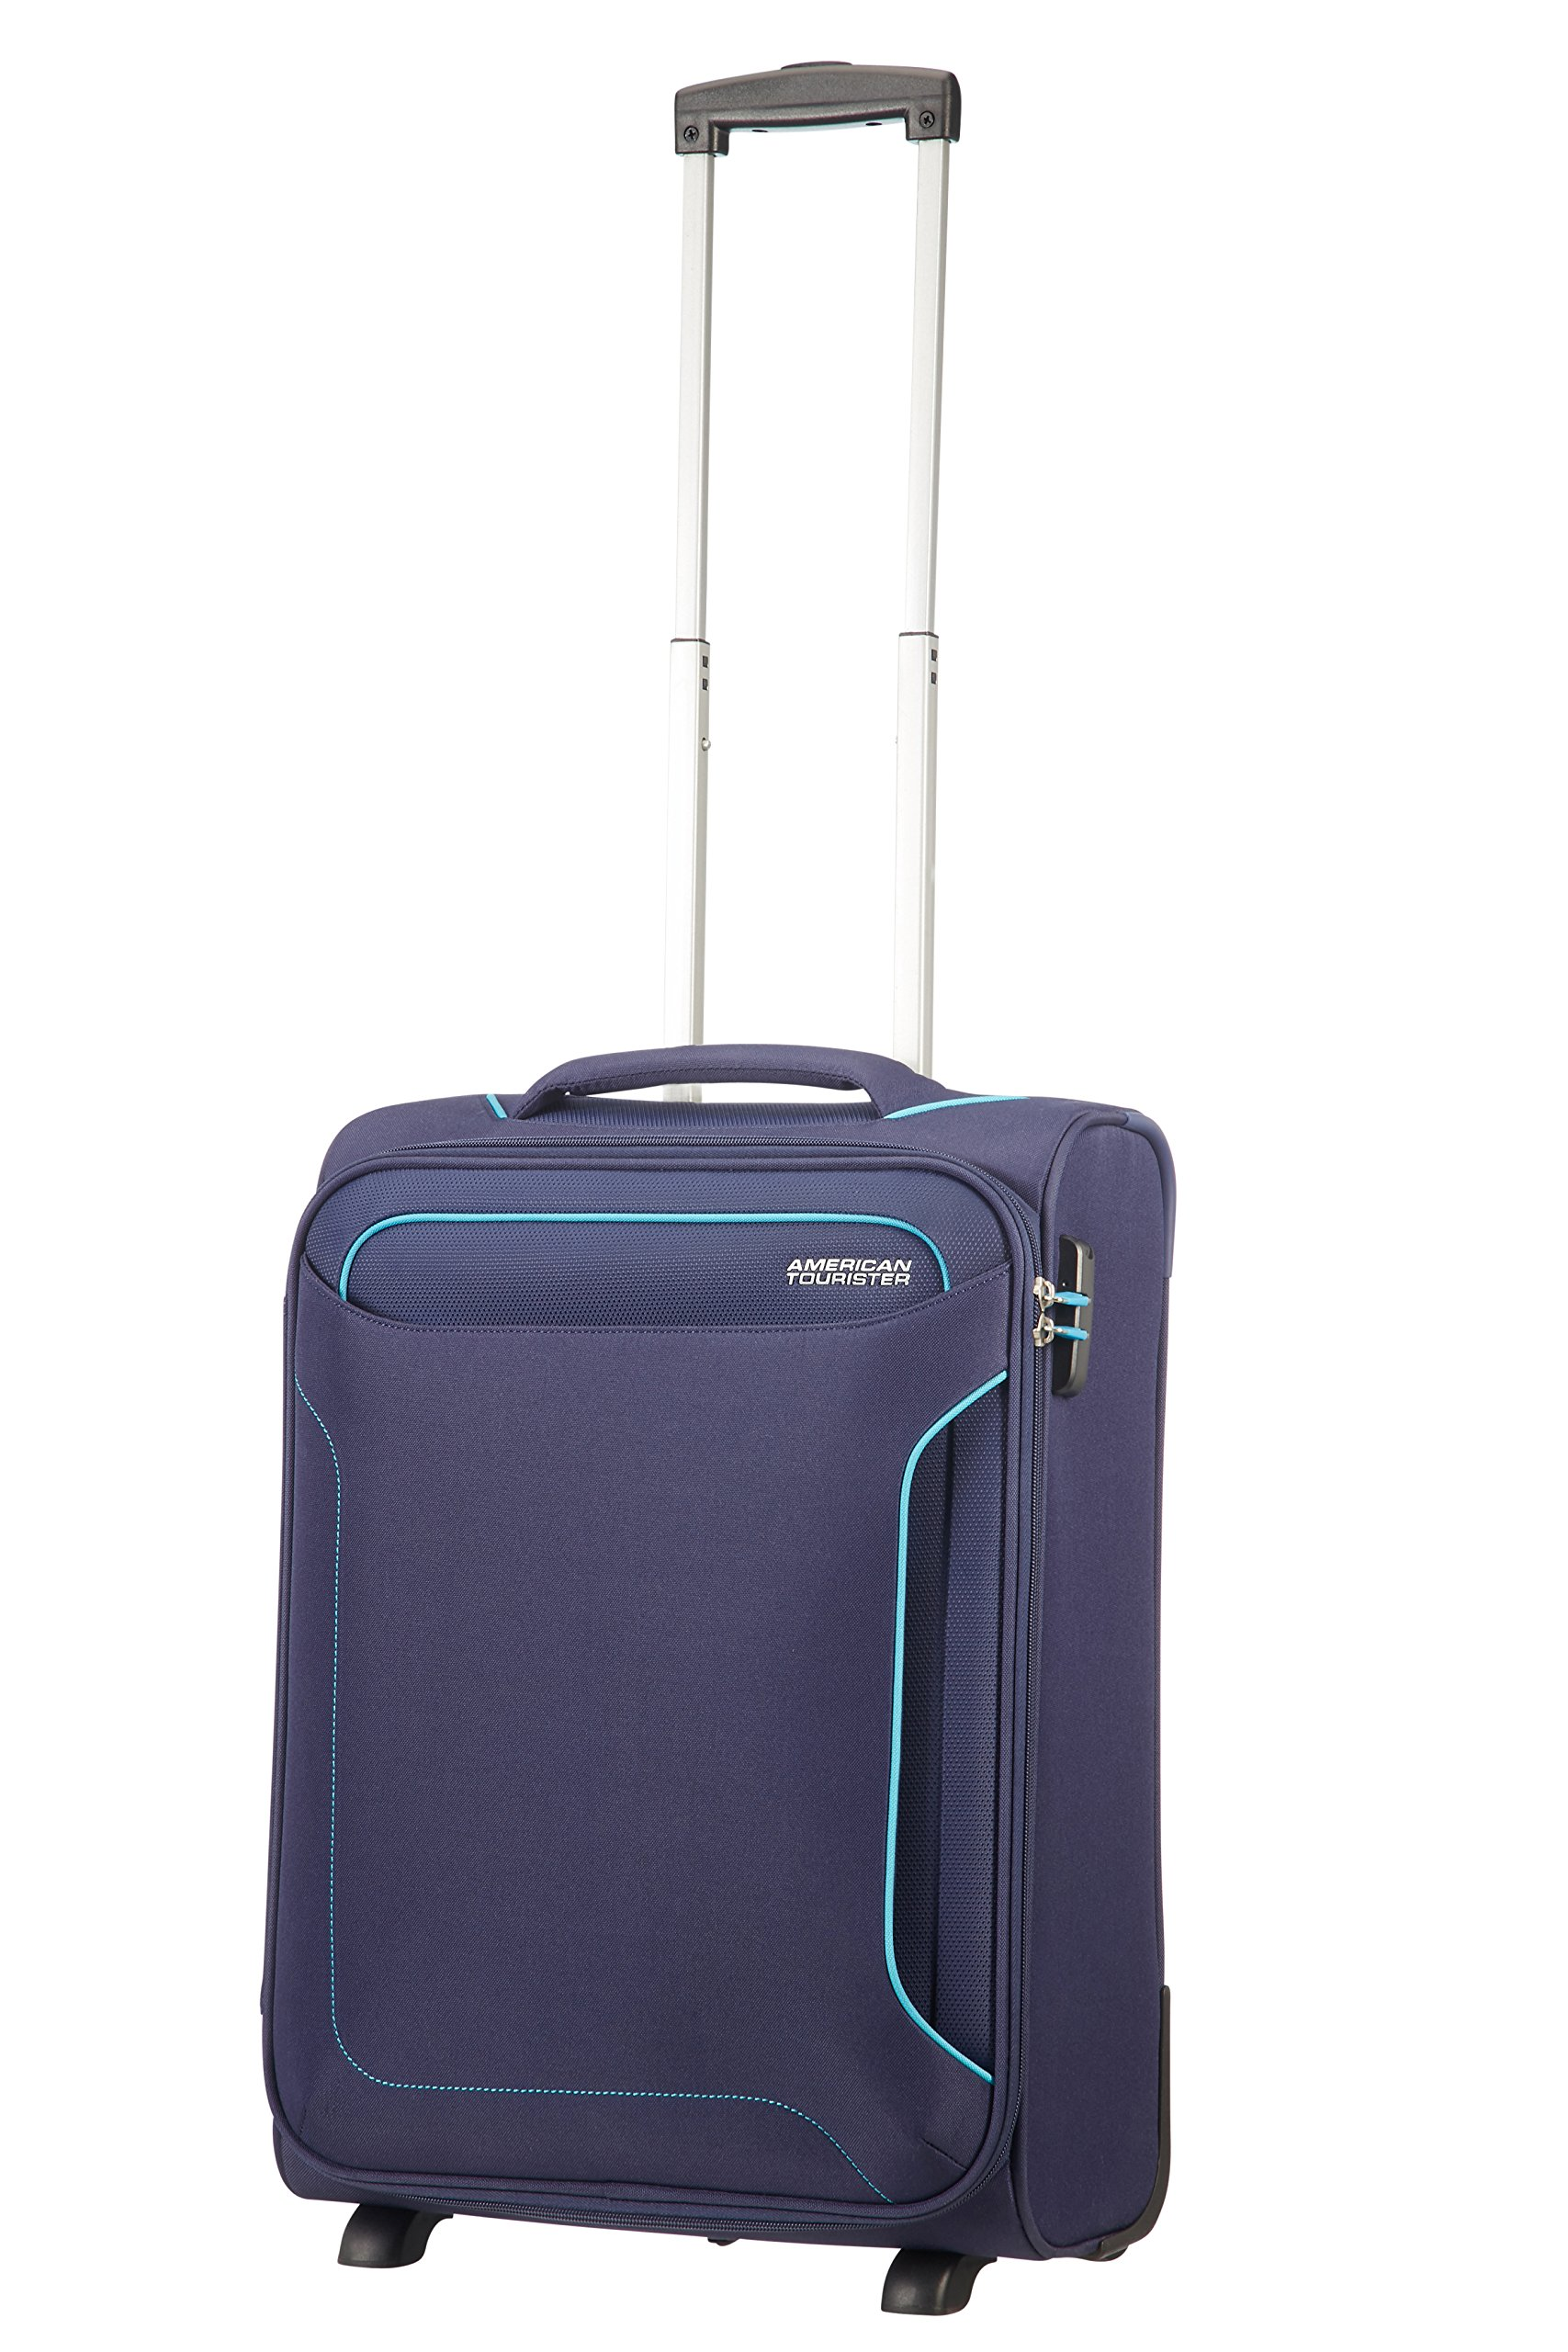 American-Tourister-Holiday-Heat